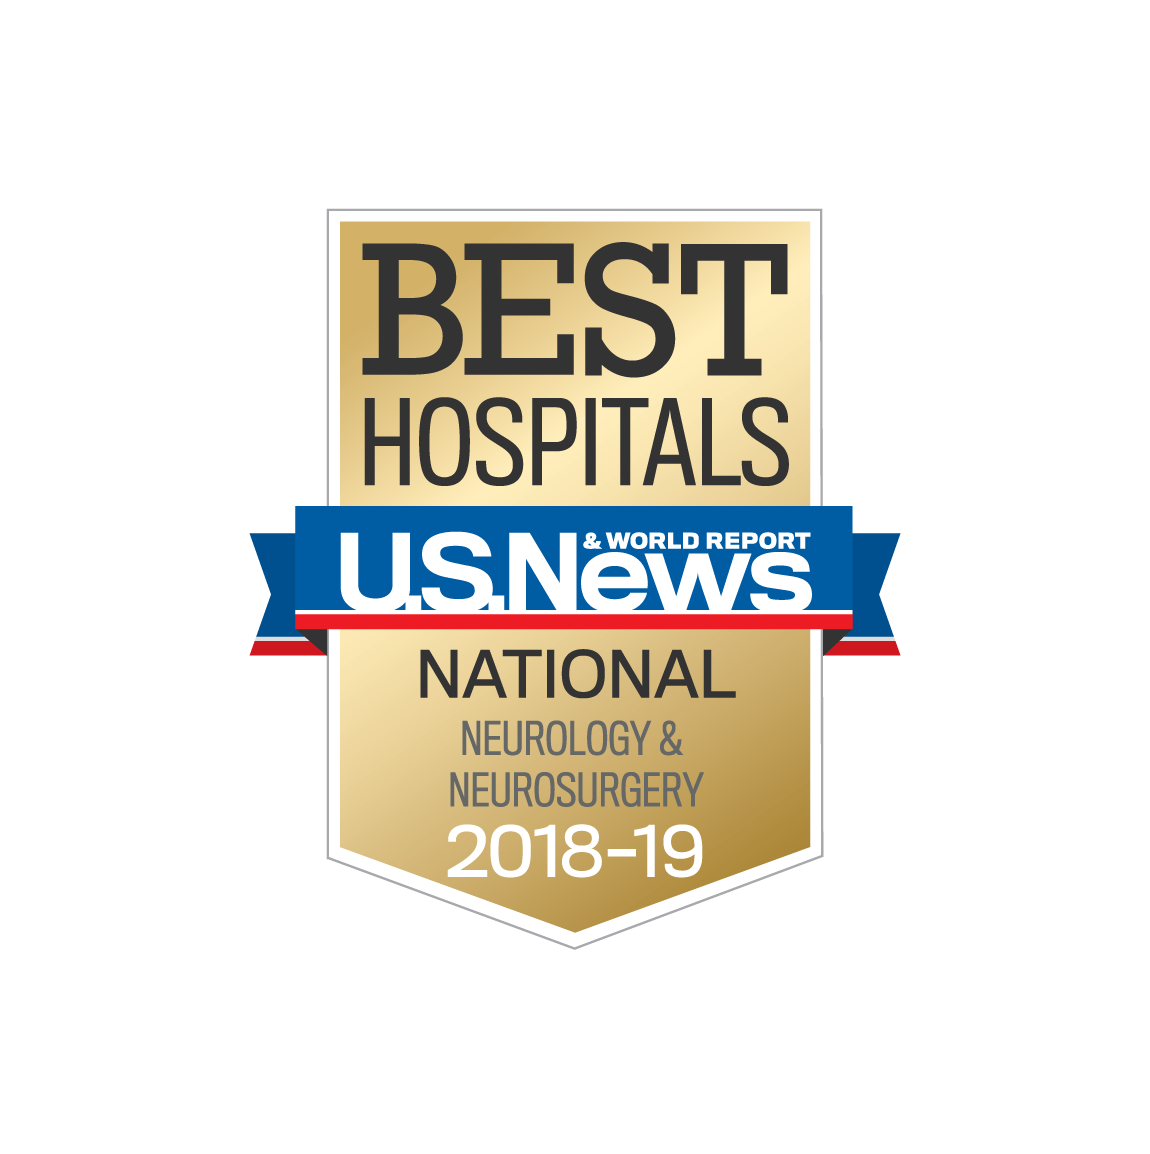 Best Hospitals US News Rankings